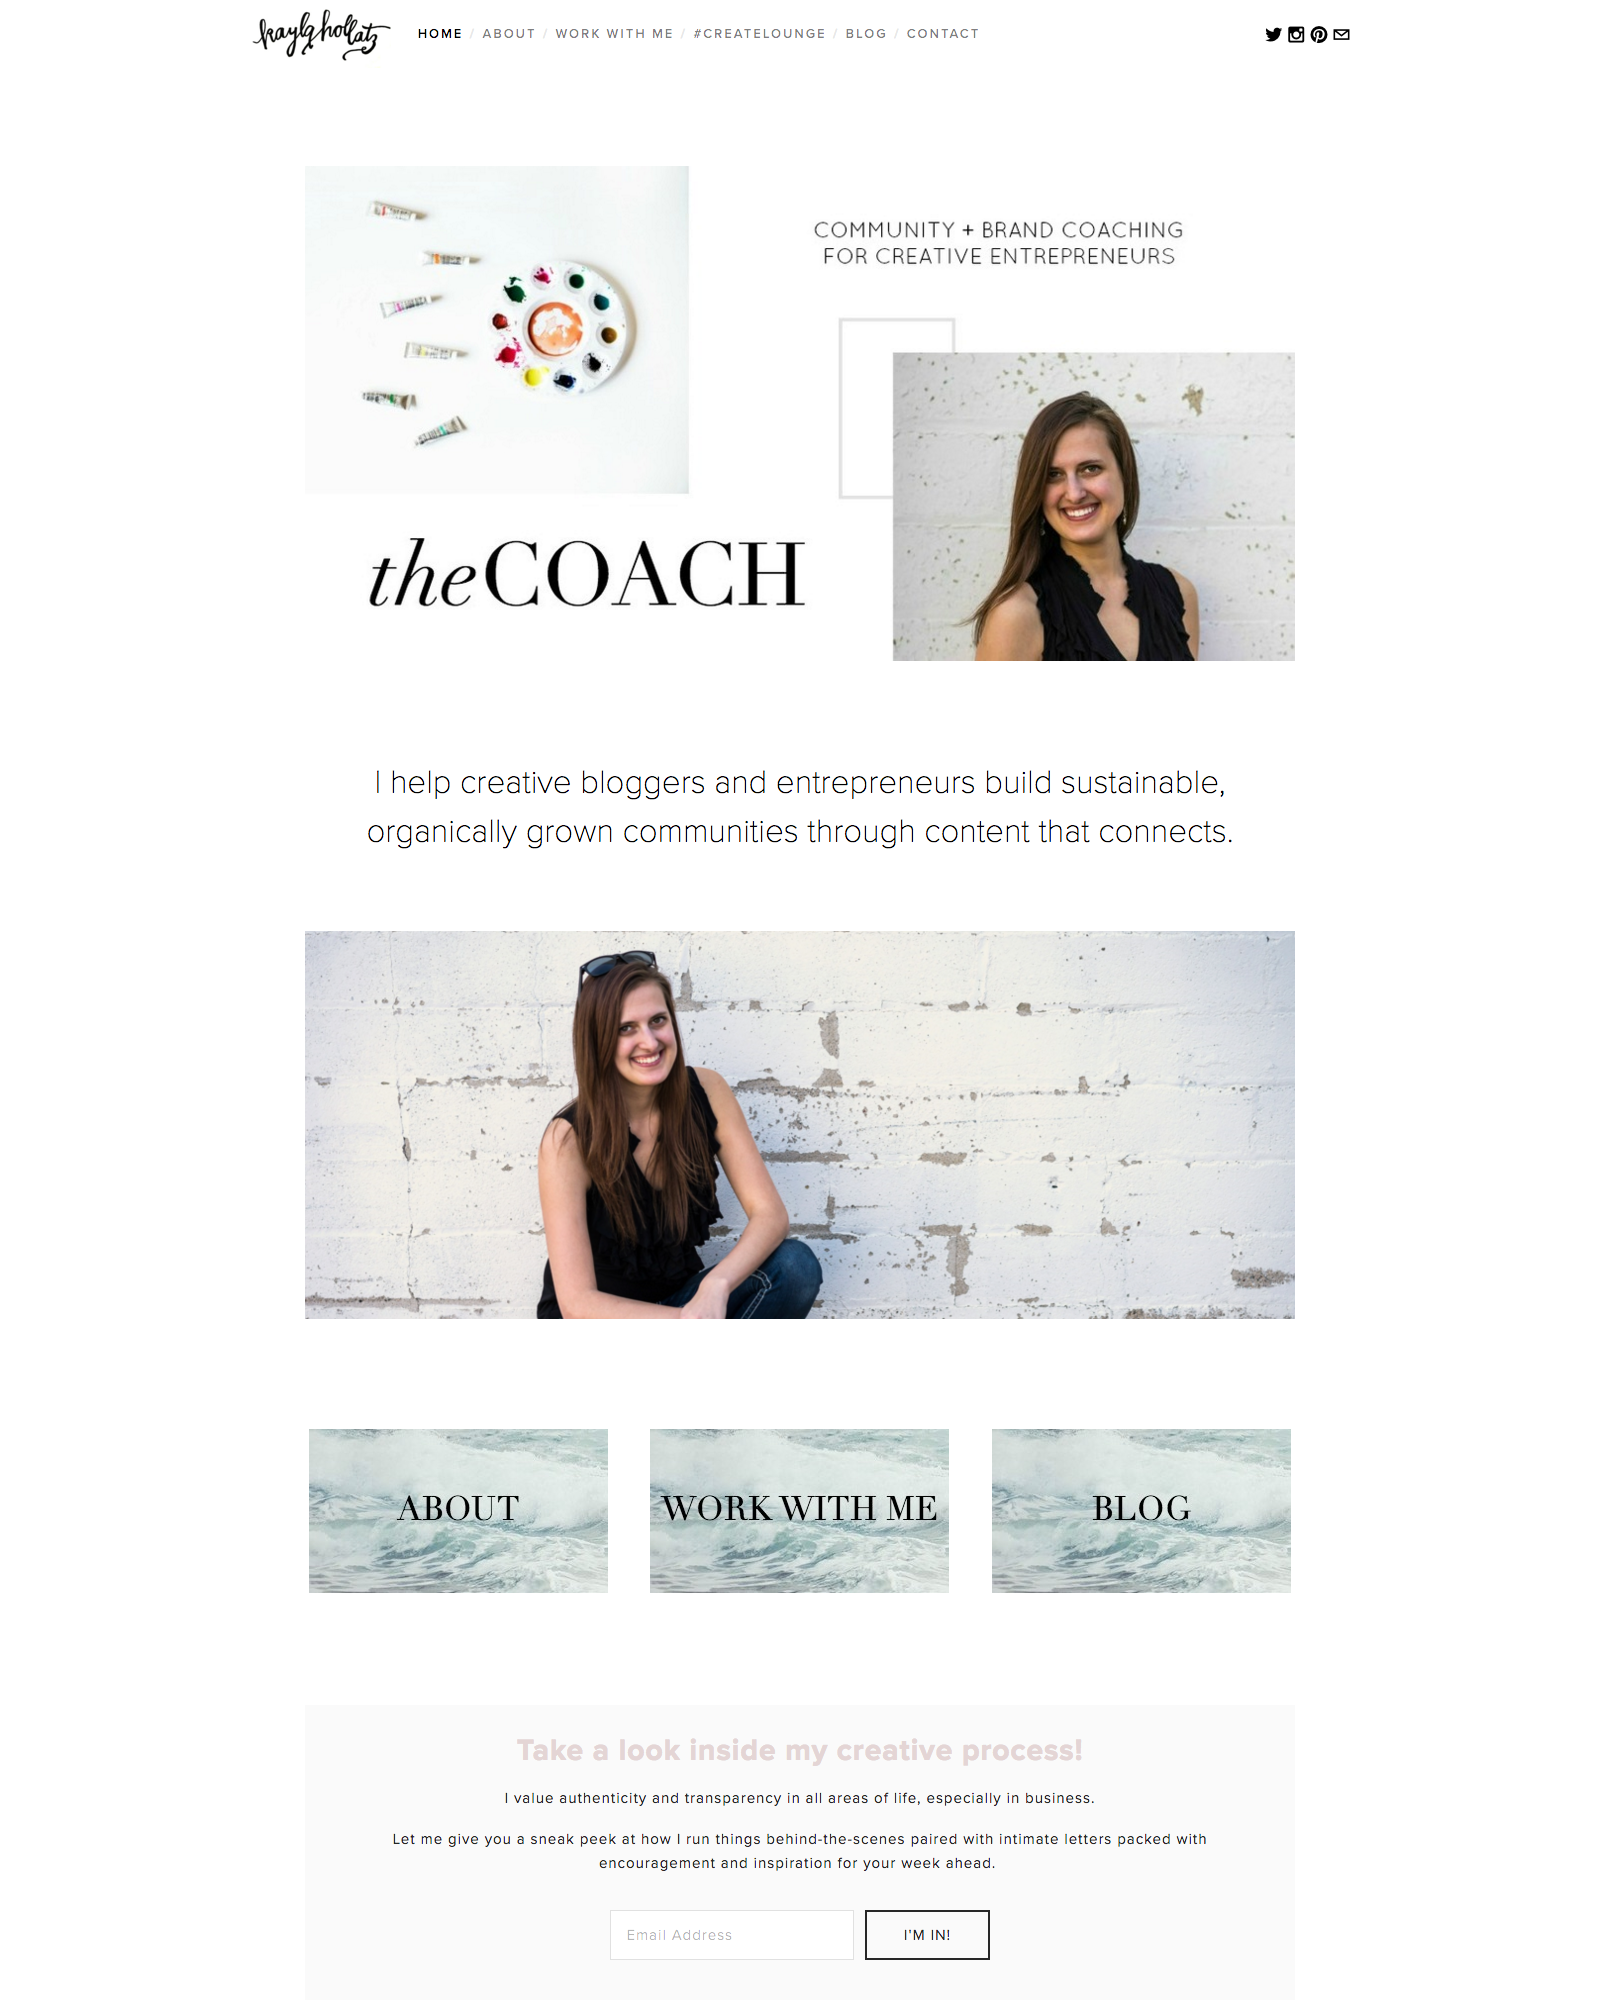 FireShot Capture 59 - Kayla Hollatz_ Community Coach for Creatives - http___kaylahollatz.com_.png